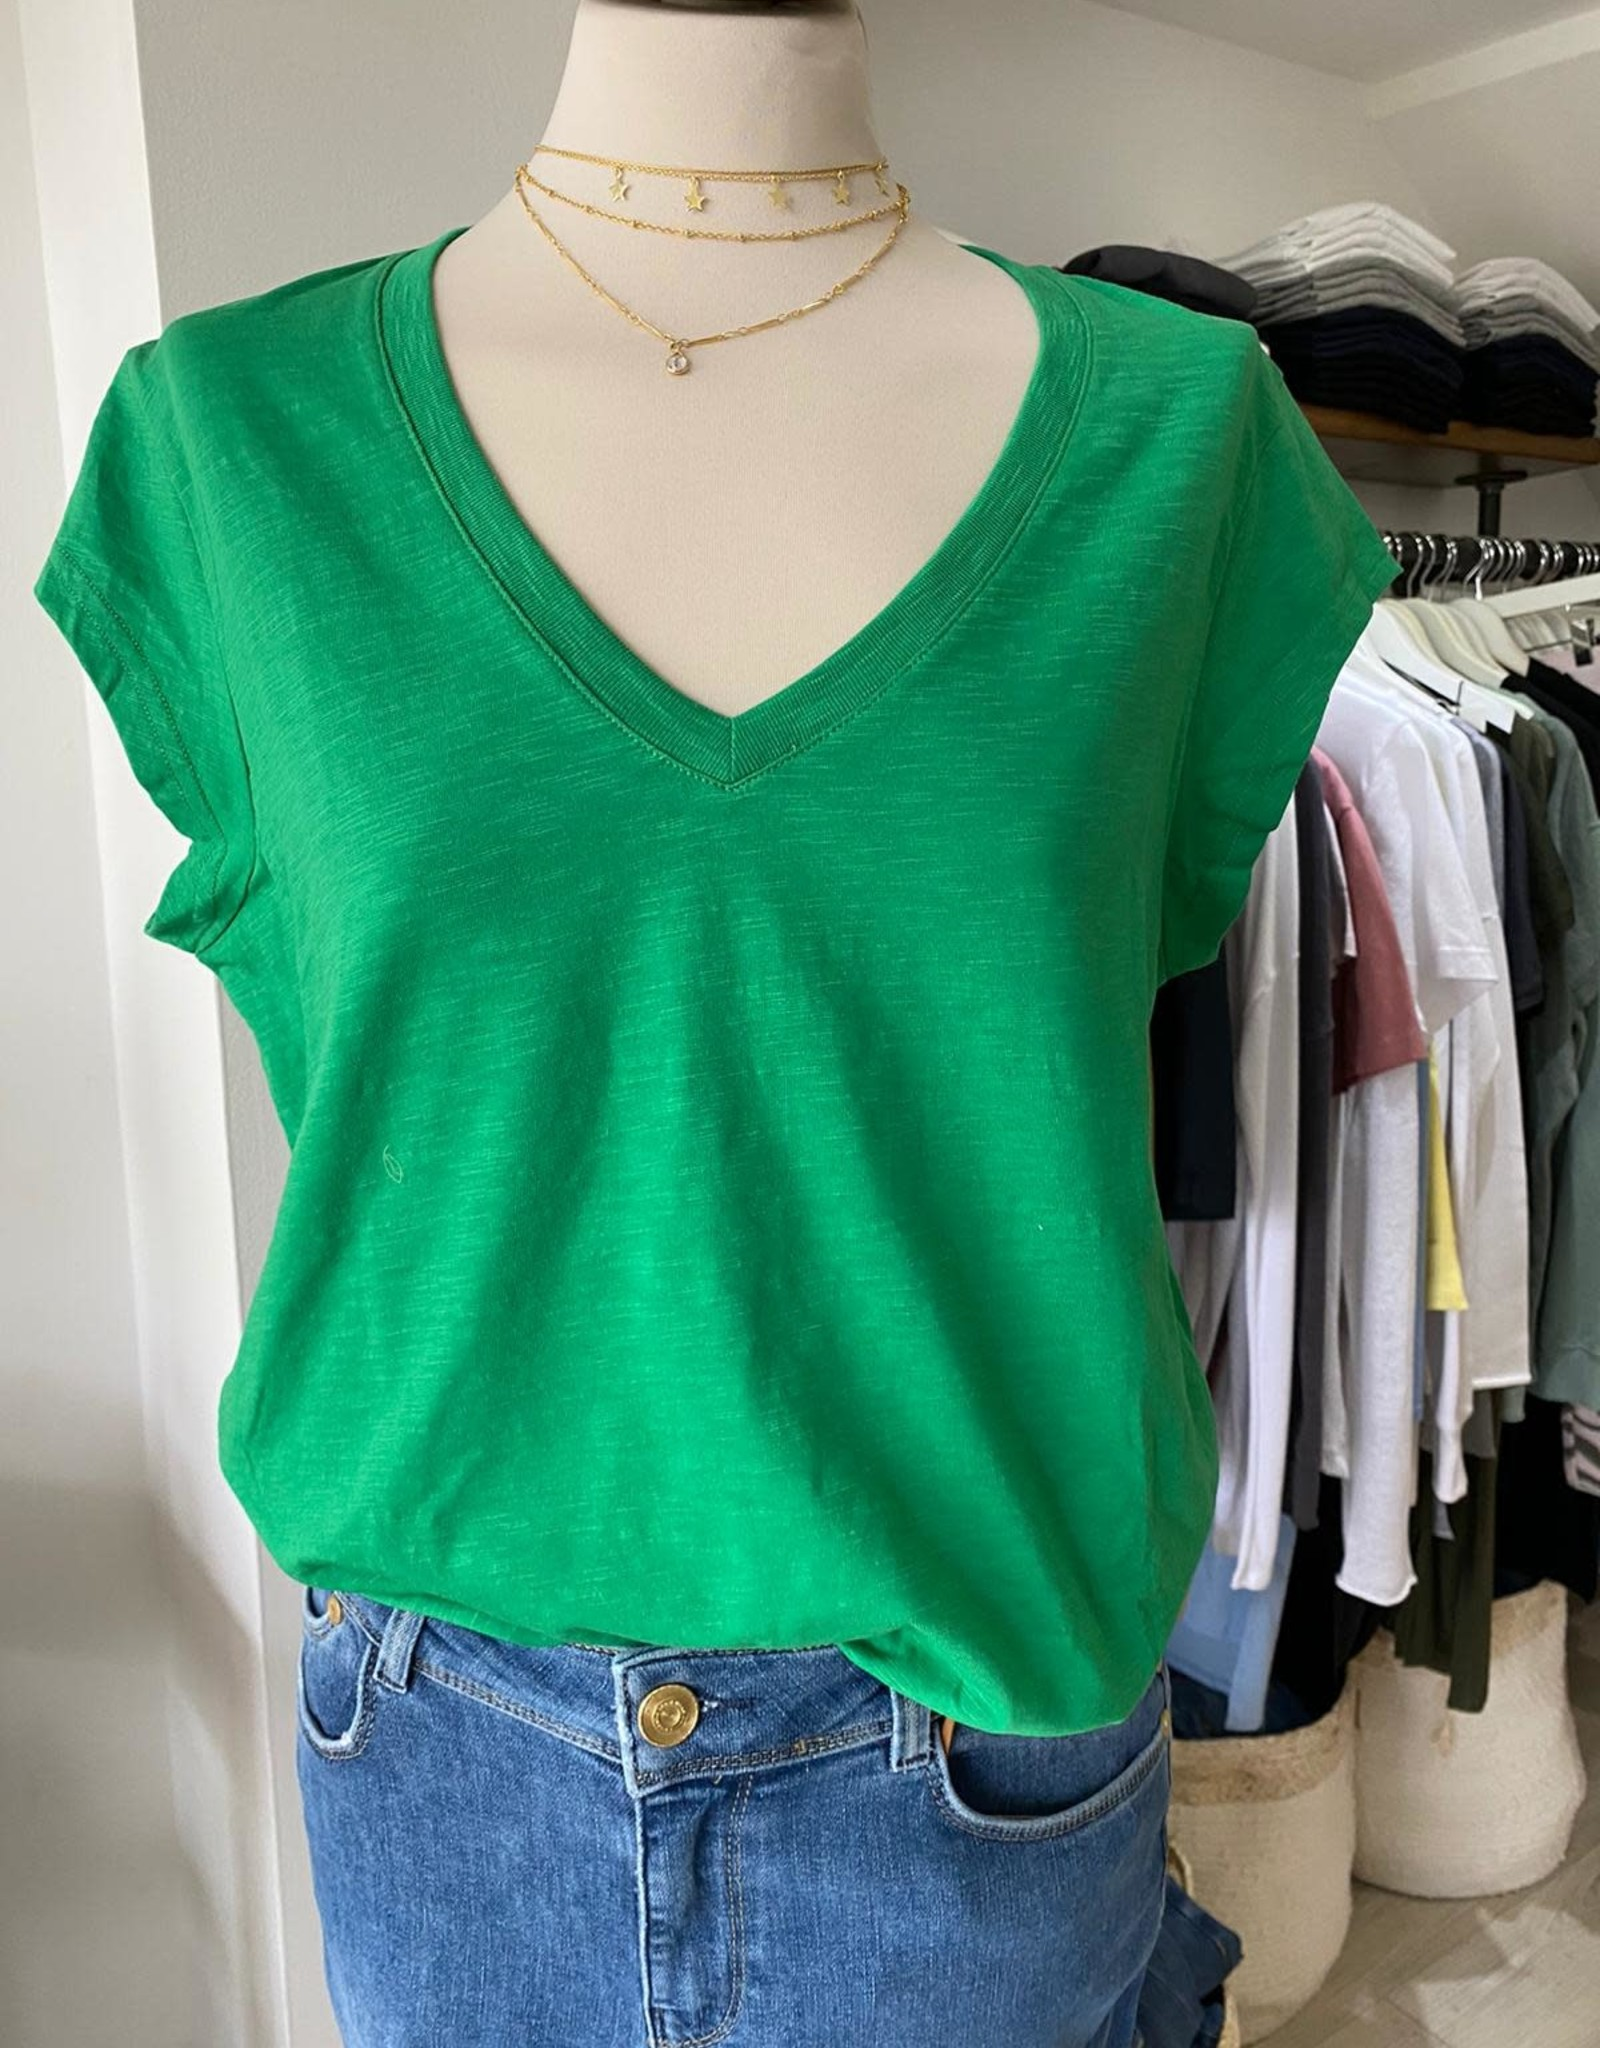 COSTER COPENHAGEN BASIC V-NECK EMERALD GREEN 402 T-SHIRT B0022 / CCH1101 COSTER